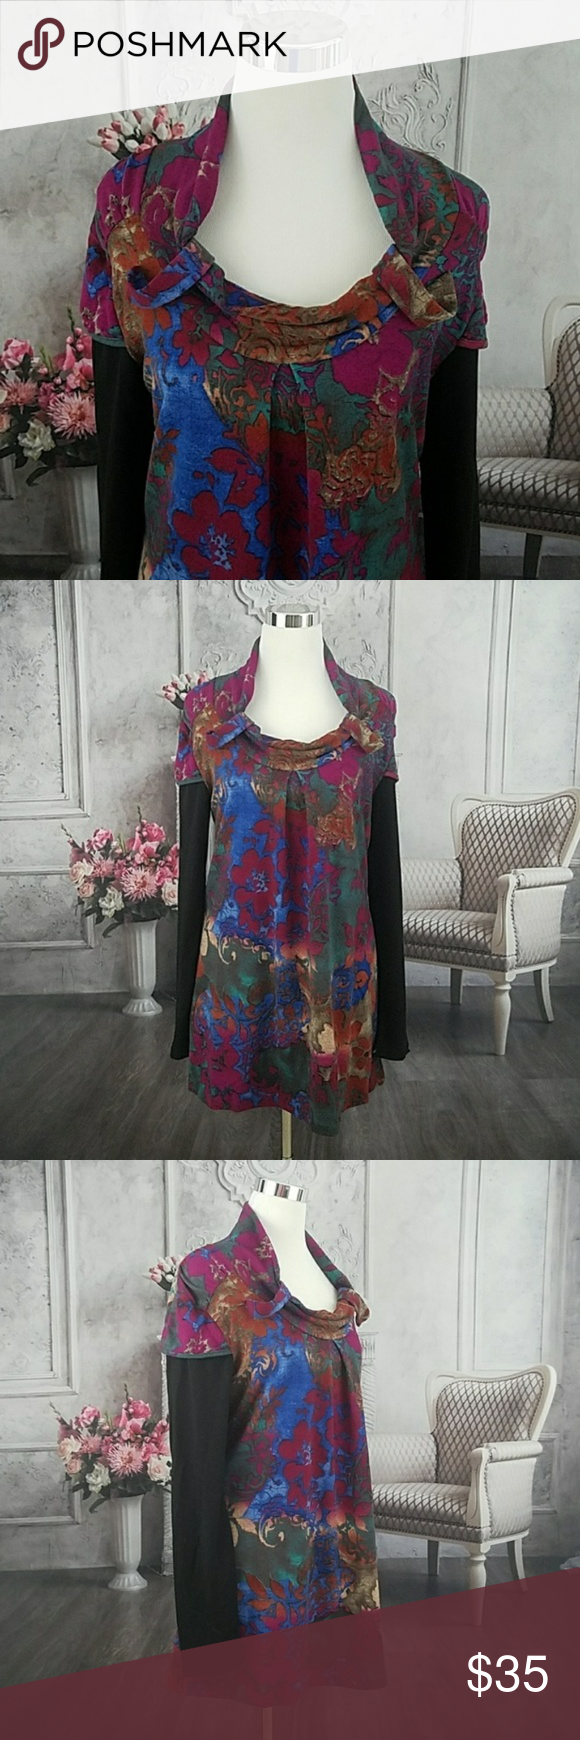 9ff54c164bc Sacred Threads Black Pink Tunic Top Size Med Brand: Sacred Threads Size:  Medium Condition